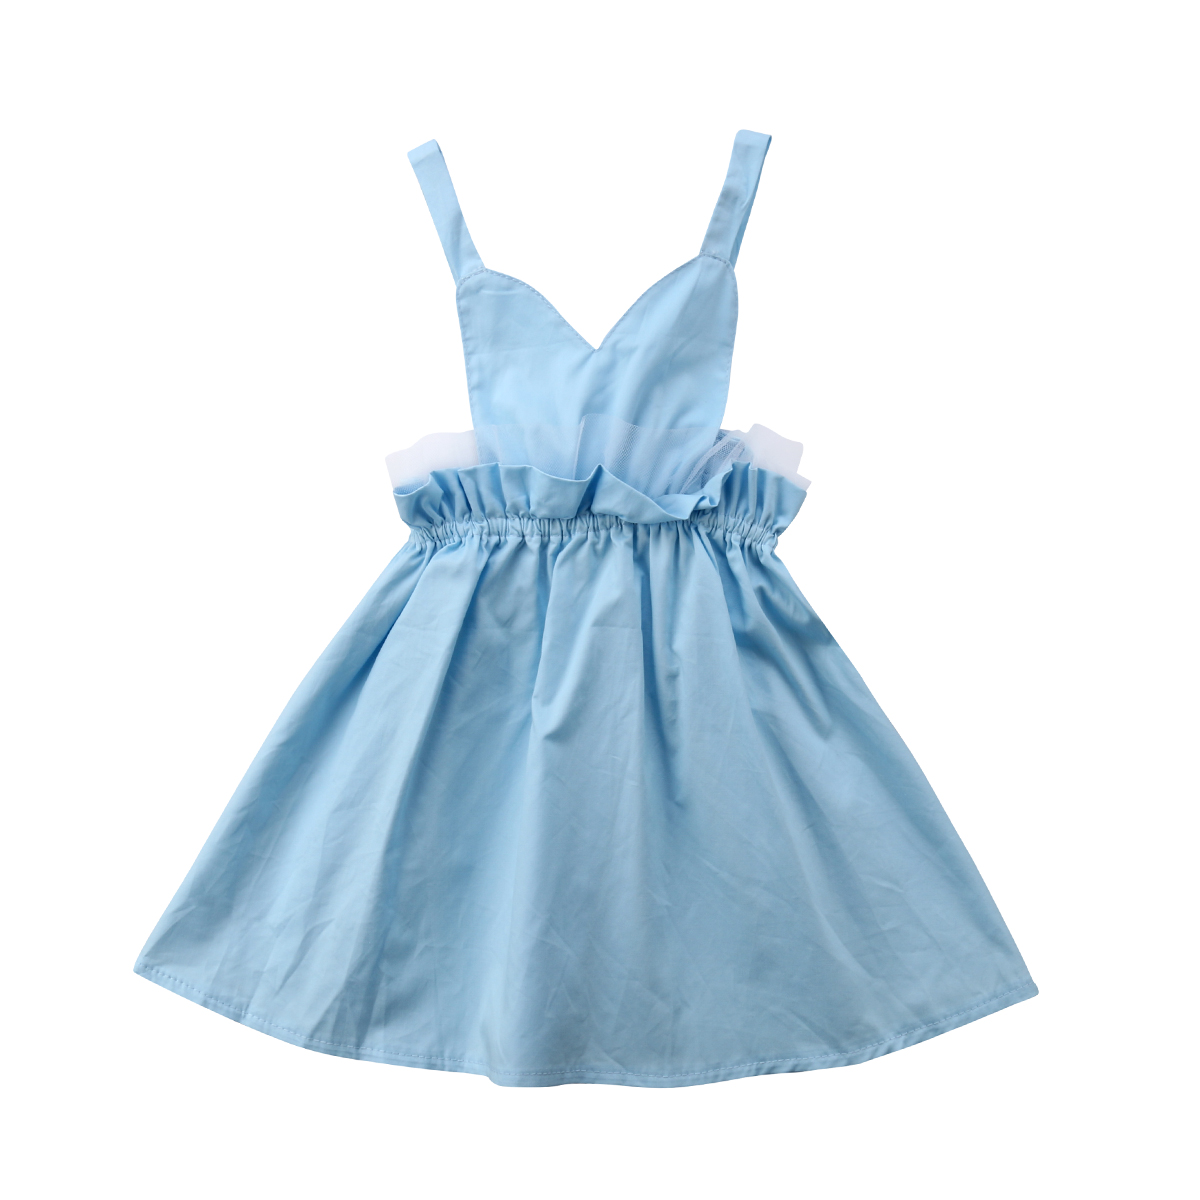 Pudcoco Kids Girl Princess Strap Sleeveless V-Neck Blue Braces With Lace Dress 1-5 Years Helen115